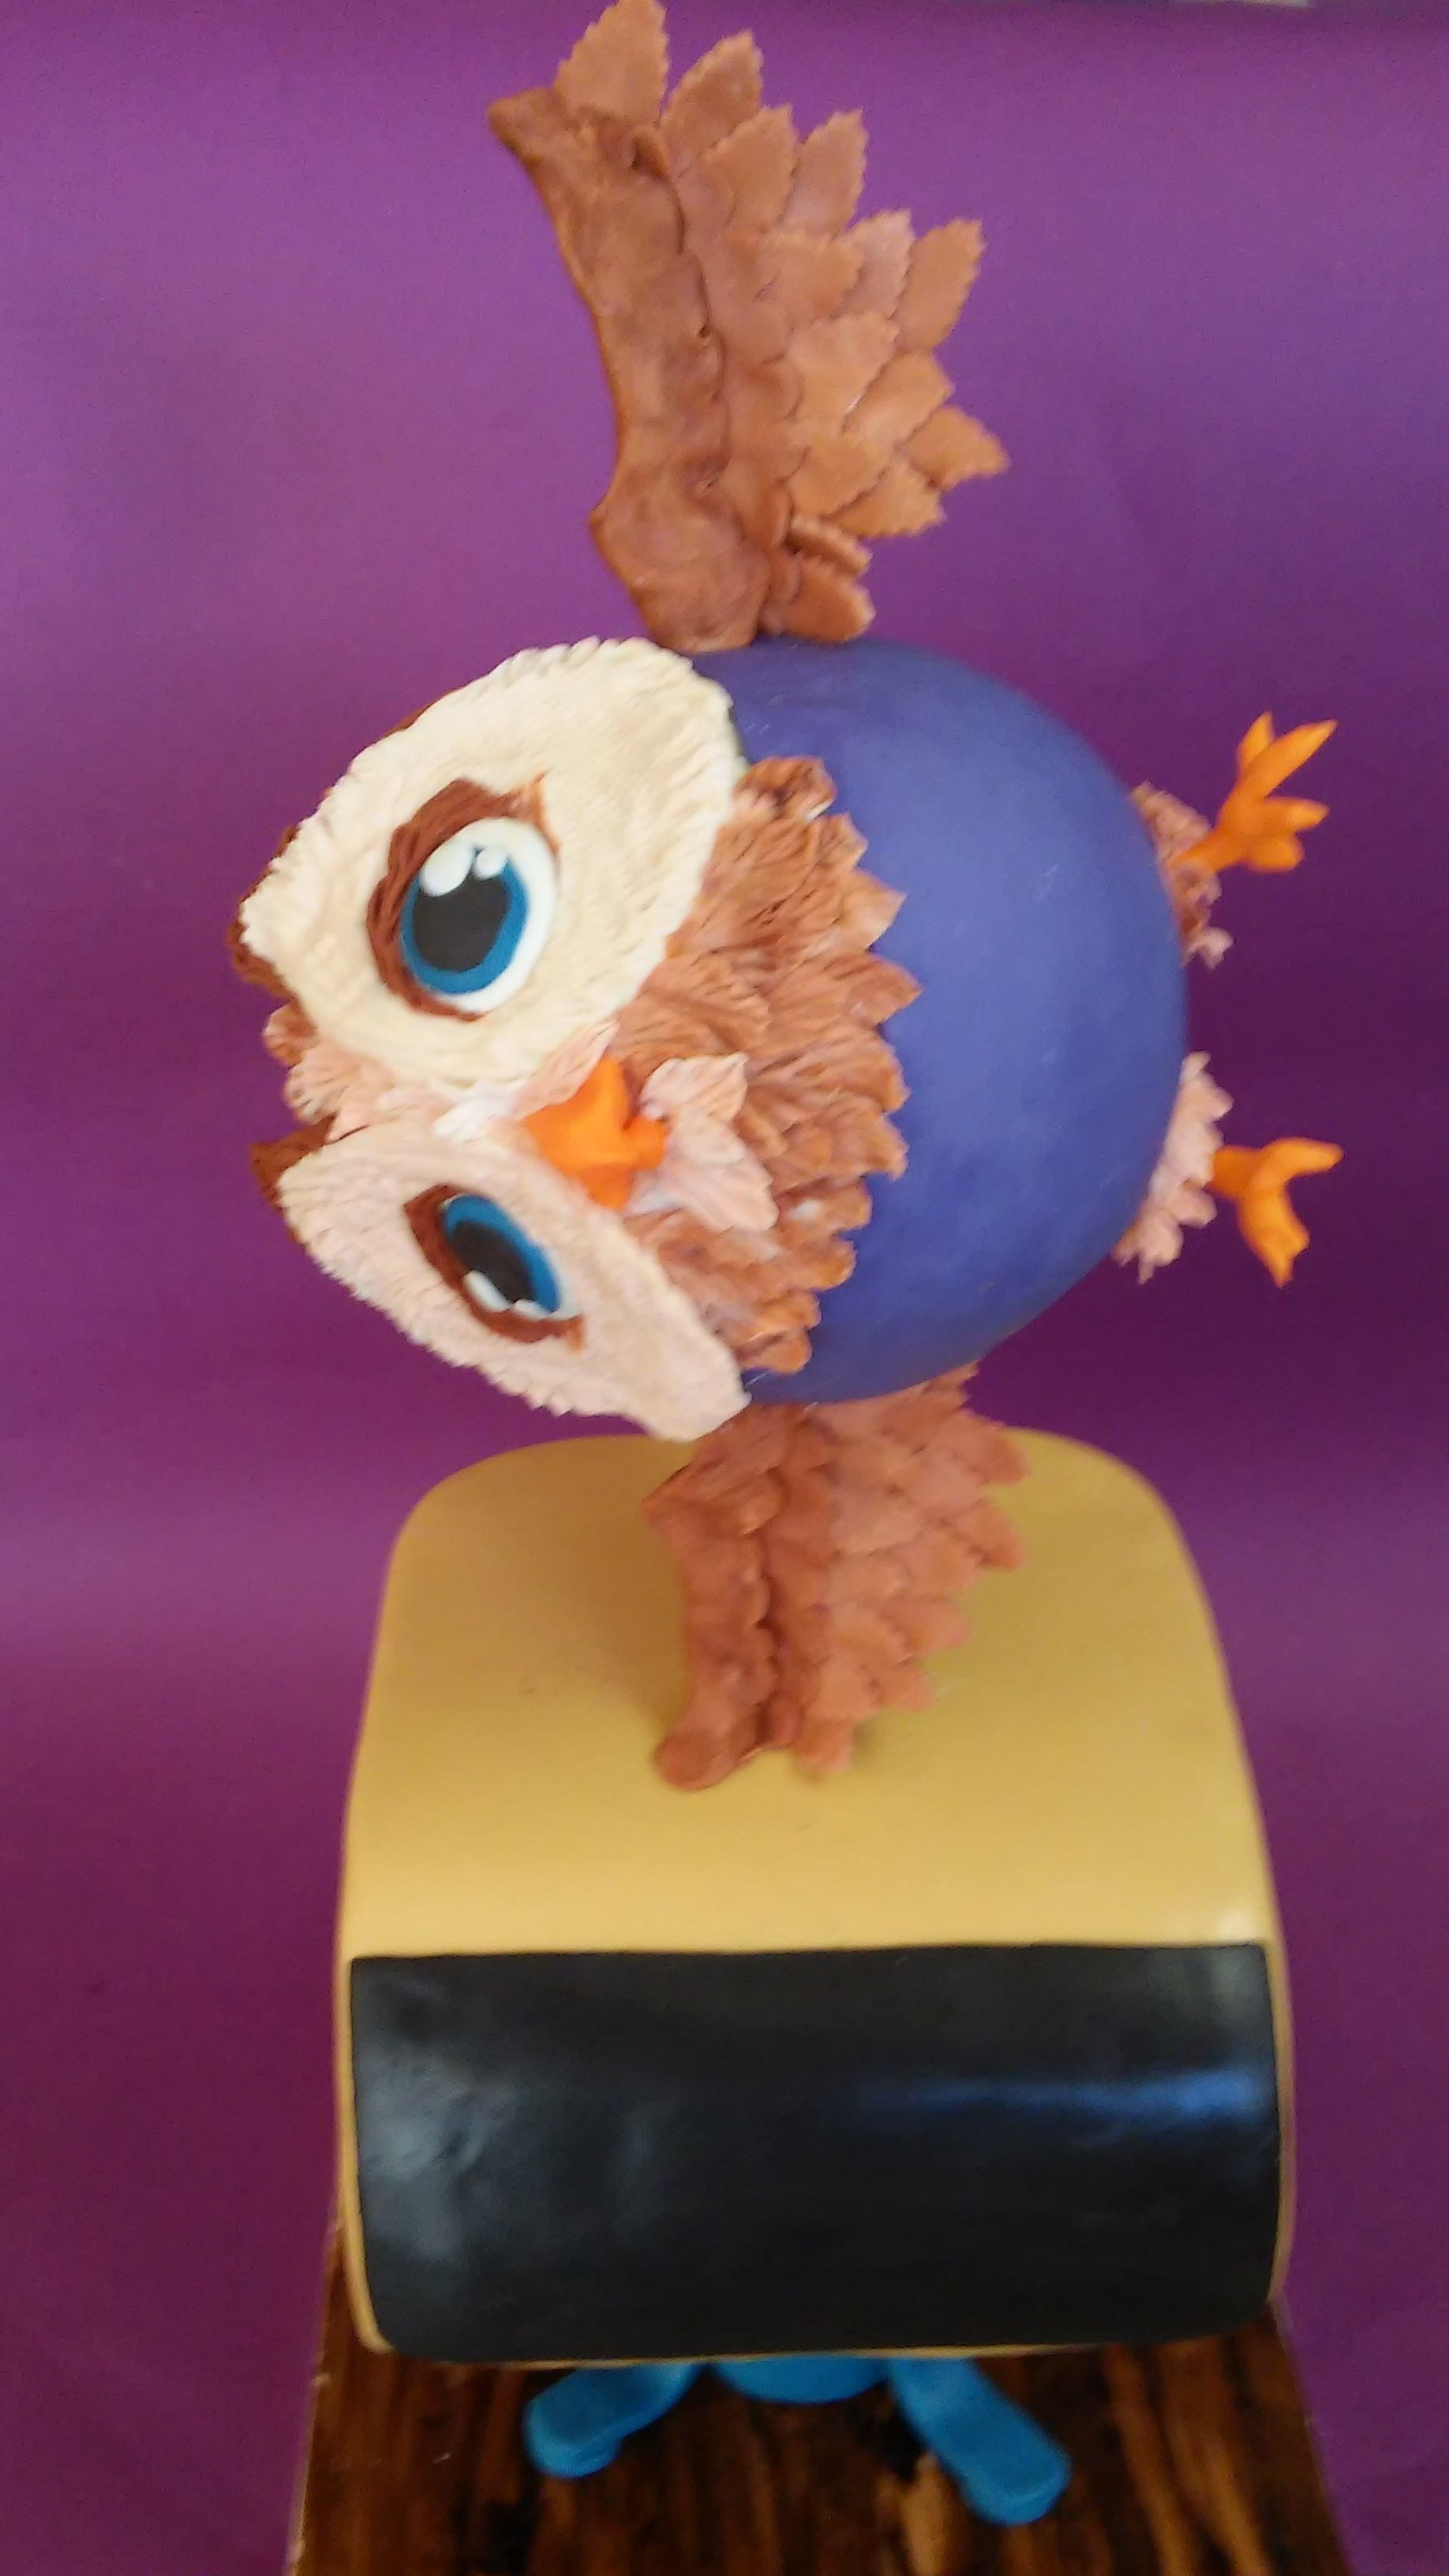 Gymnastic Owl This is my first gravity defying cake. The birthday girl wanted an owl leaping on a gymnast vault. So here it is! The owl is cake and rkt,...